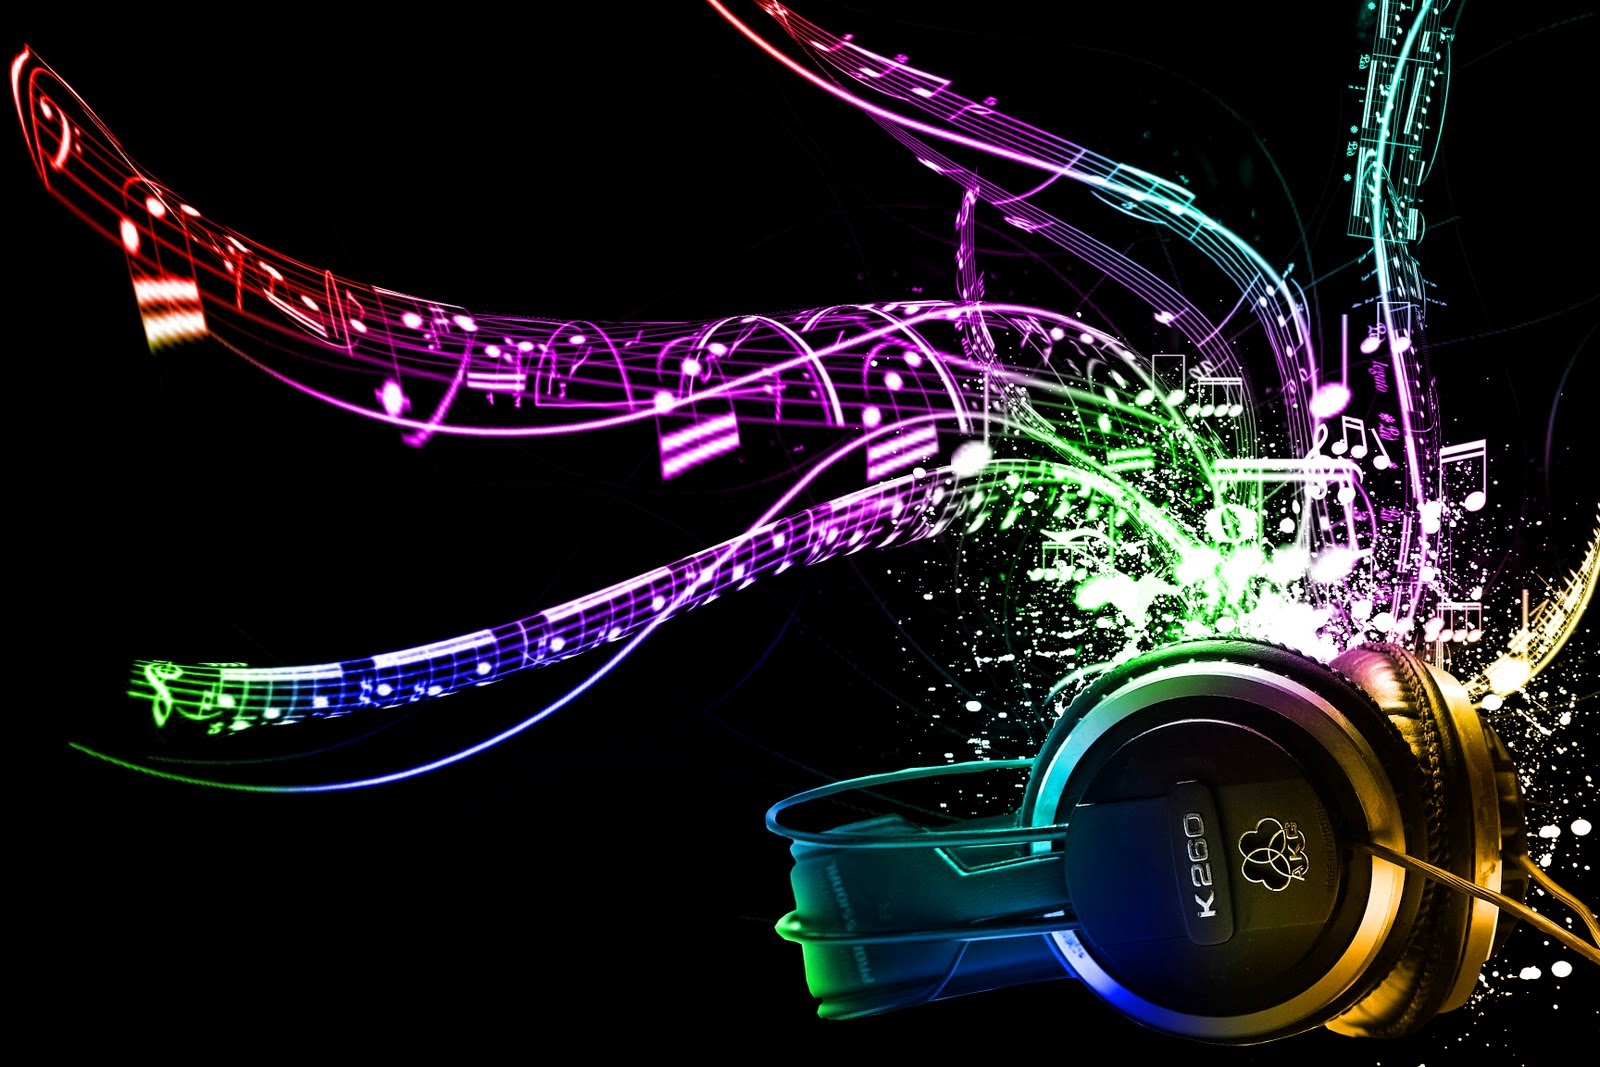 Headphones Music Notes: IiIiI...::: DJ THILAN :::... IiIiI